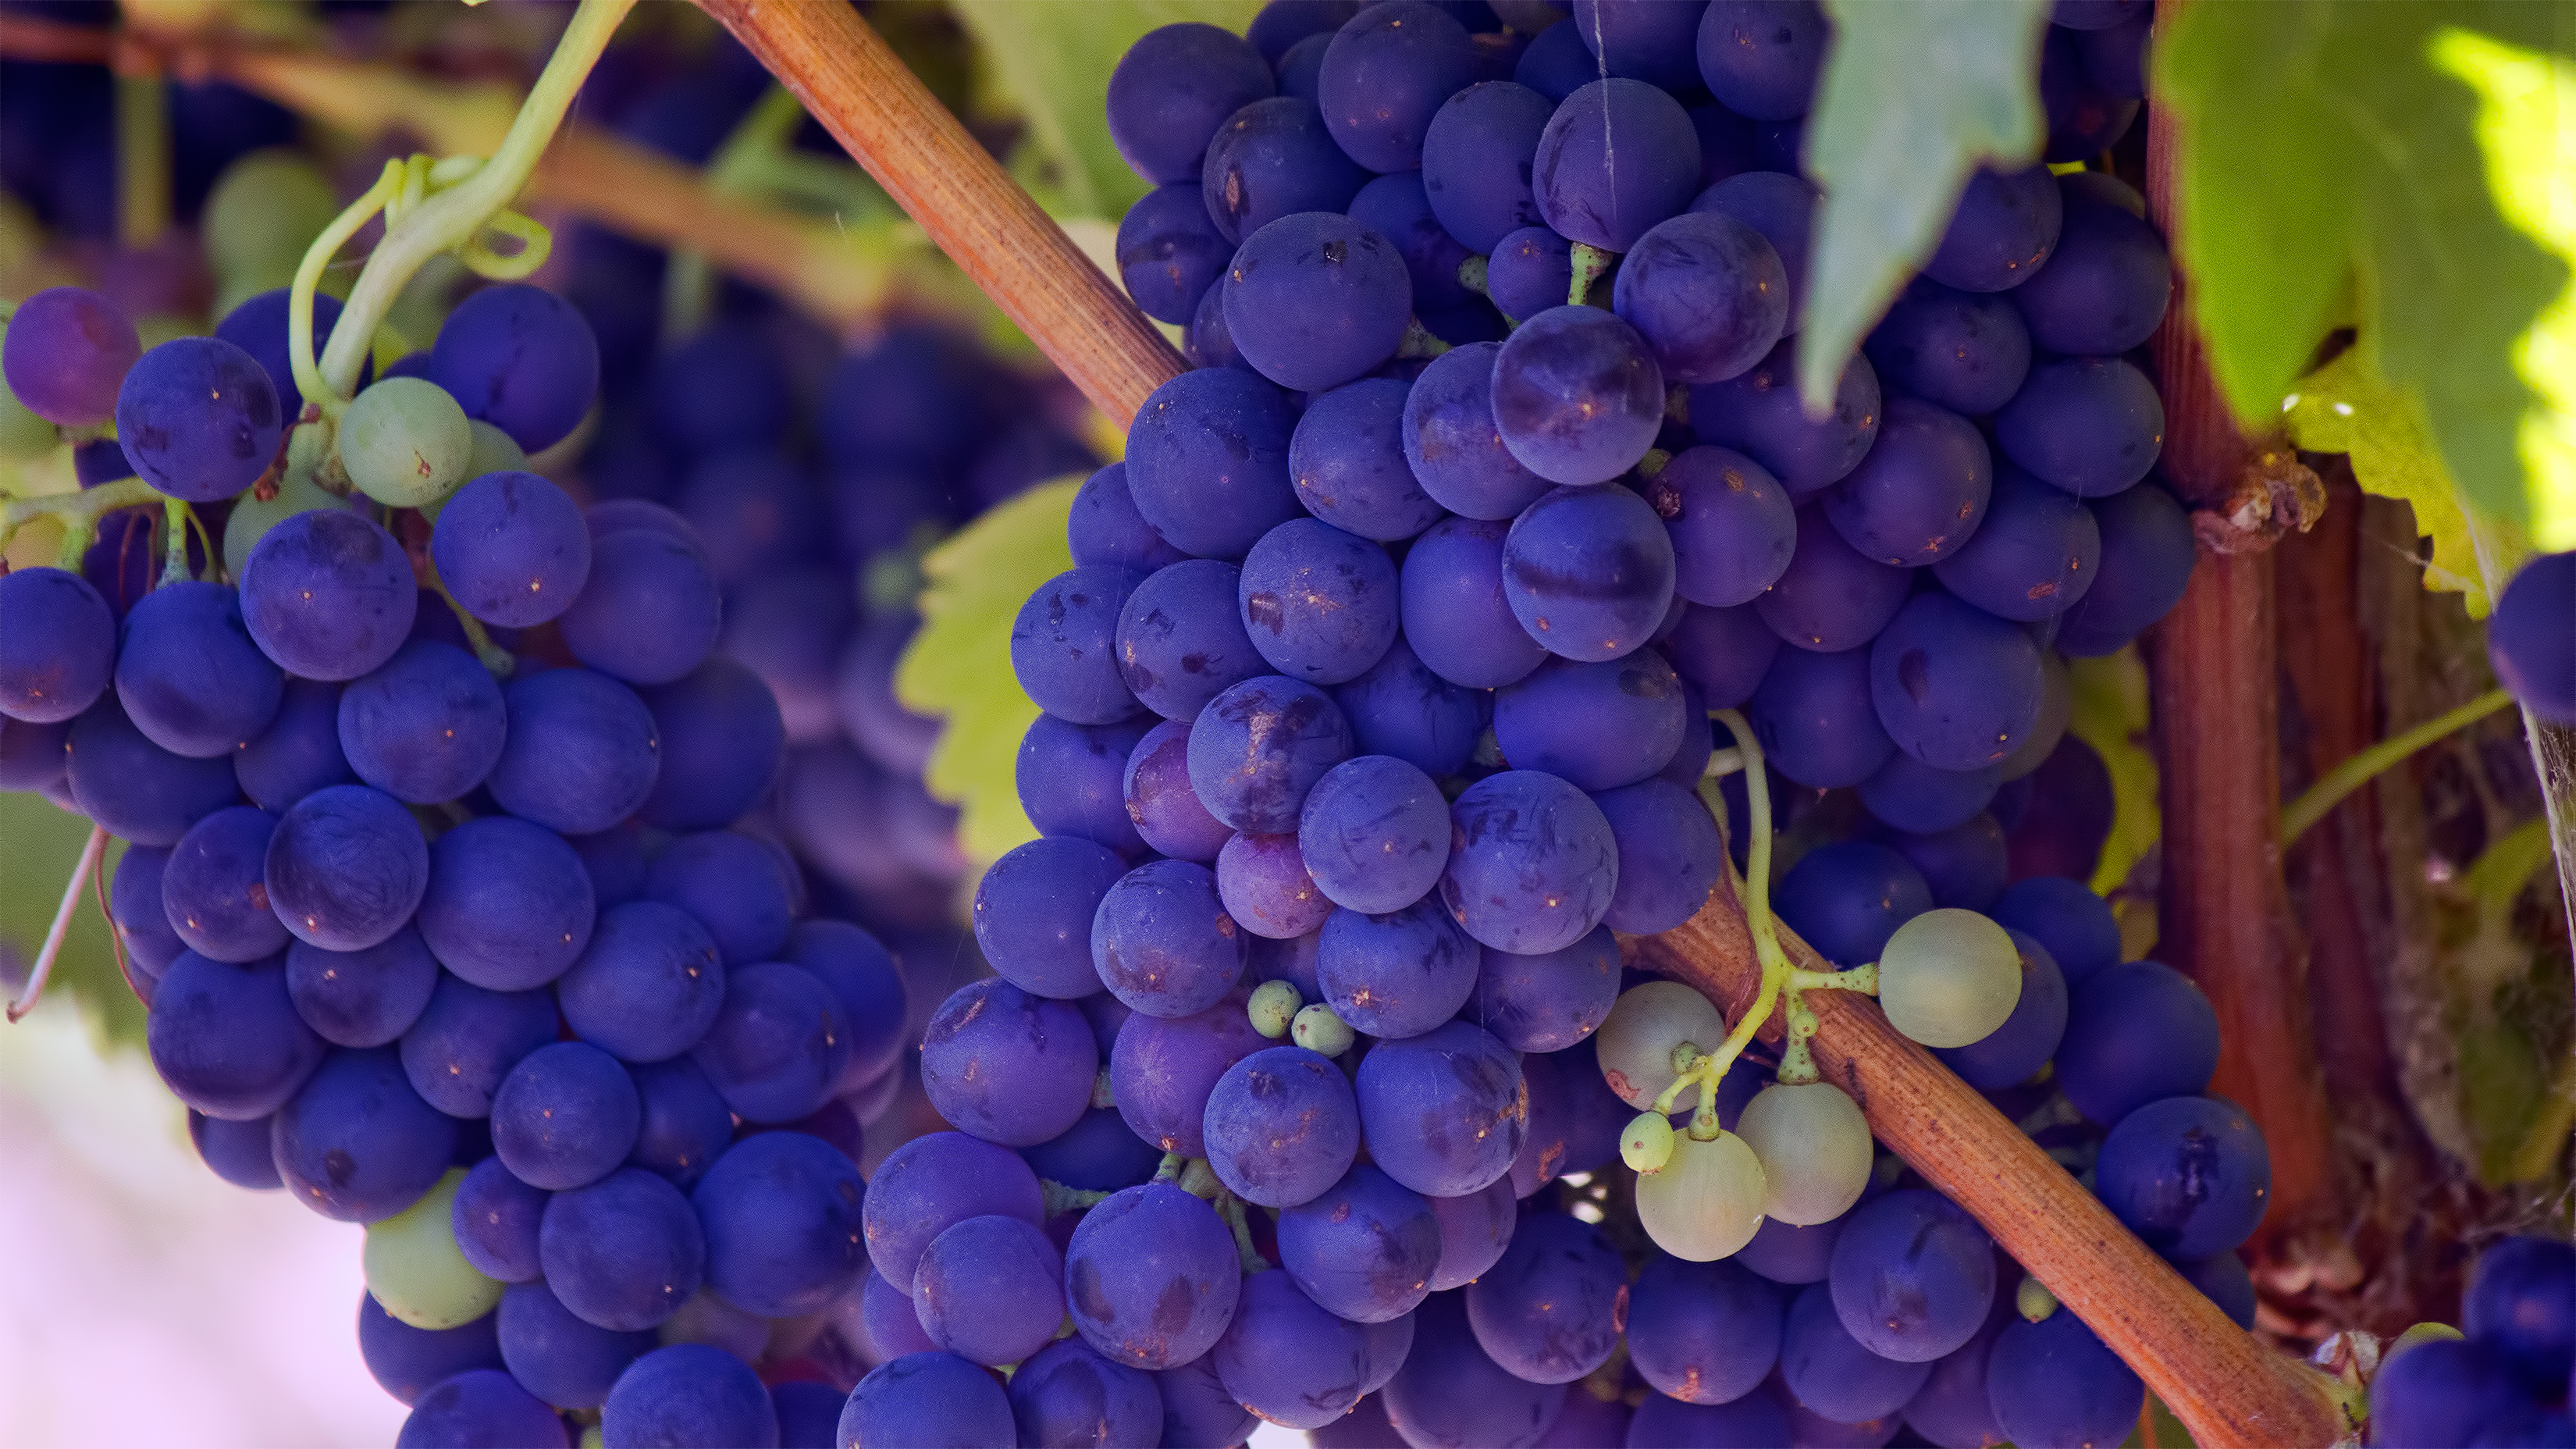 A close-up of bunches of purple grapes on the vine